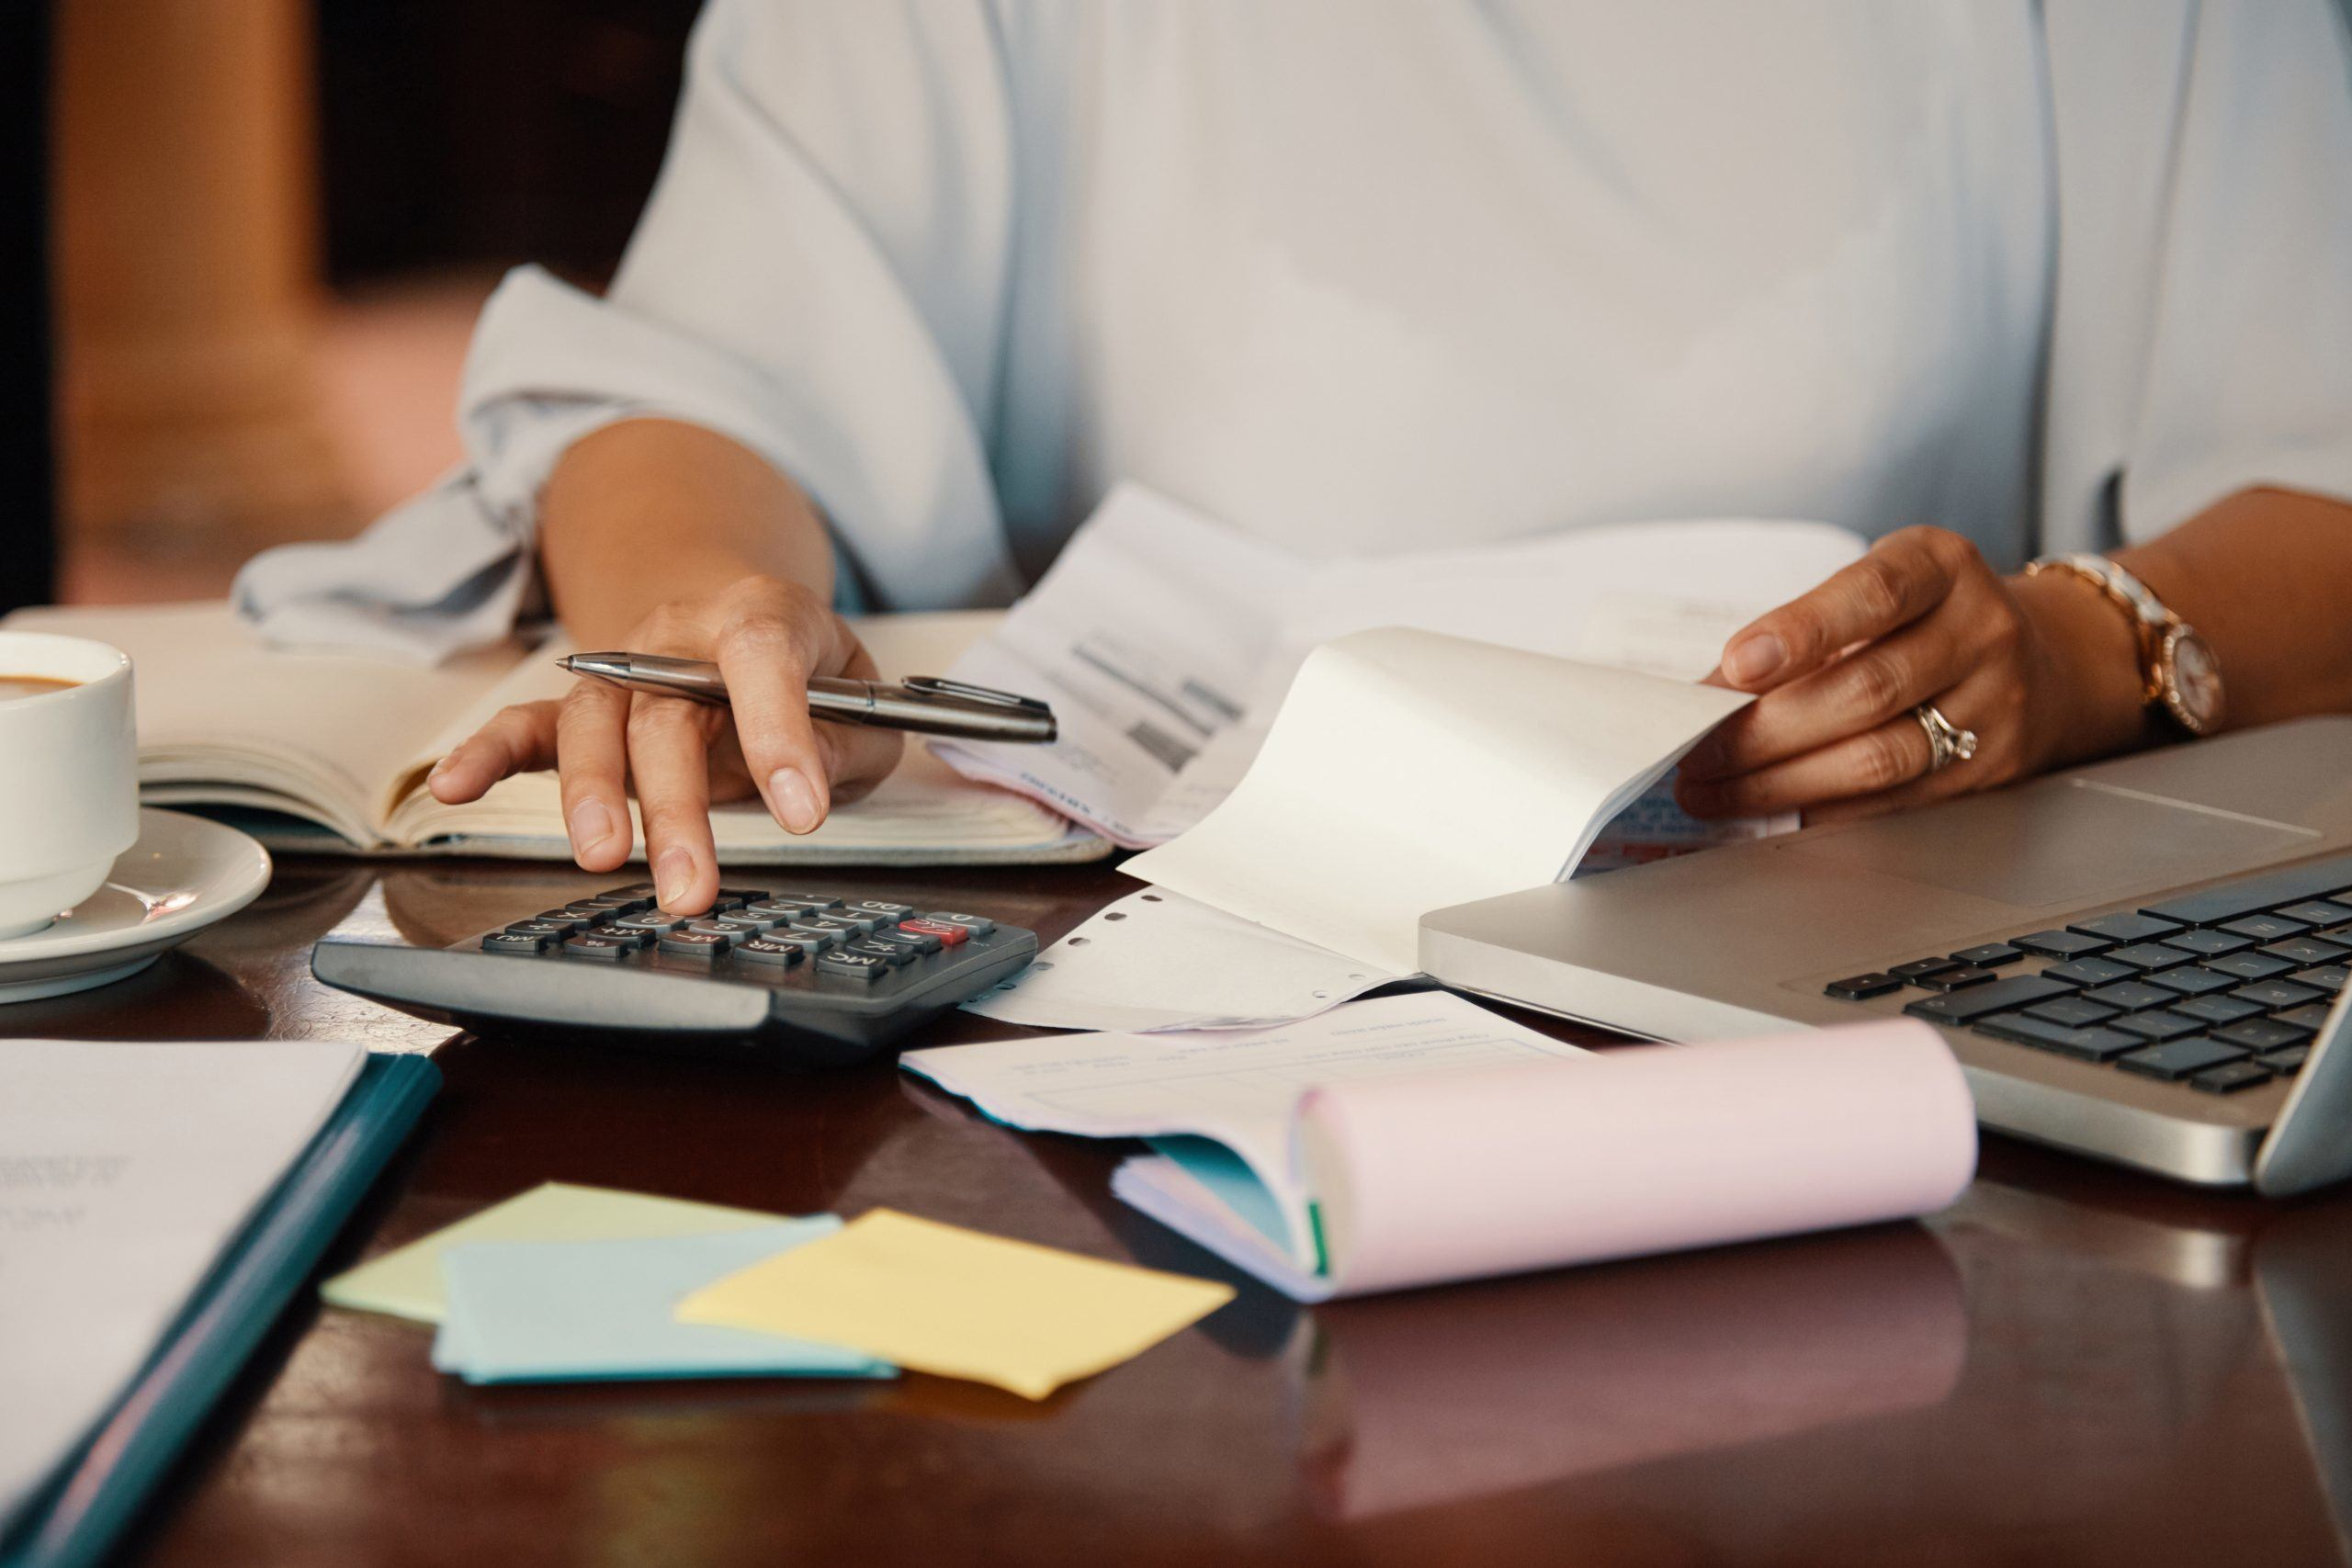 Entrepreneur working with bills and documents, avoid Spending on Non-necessities